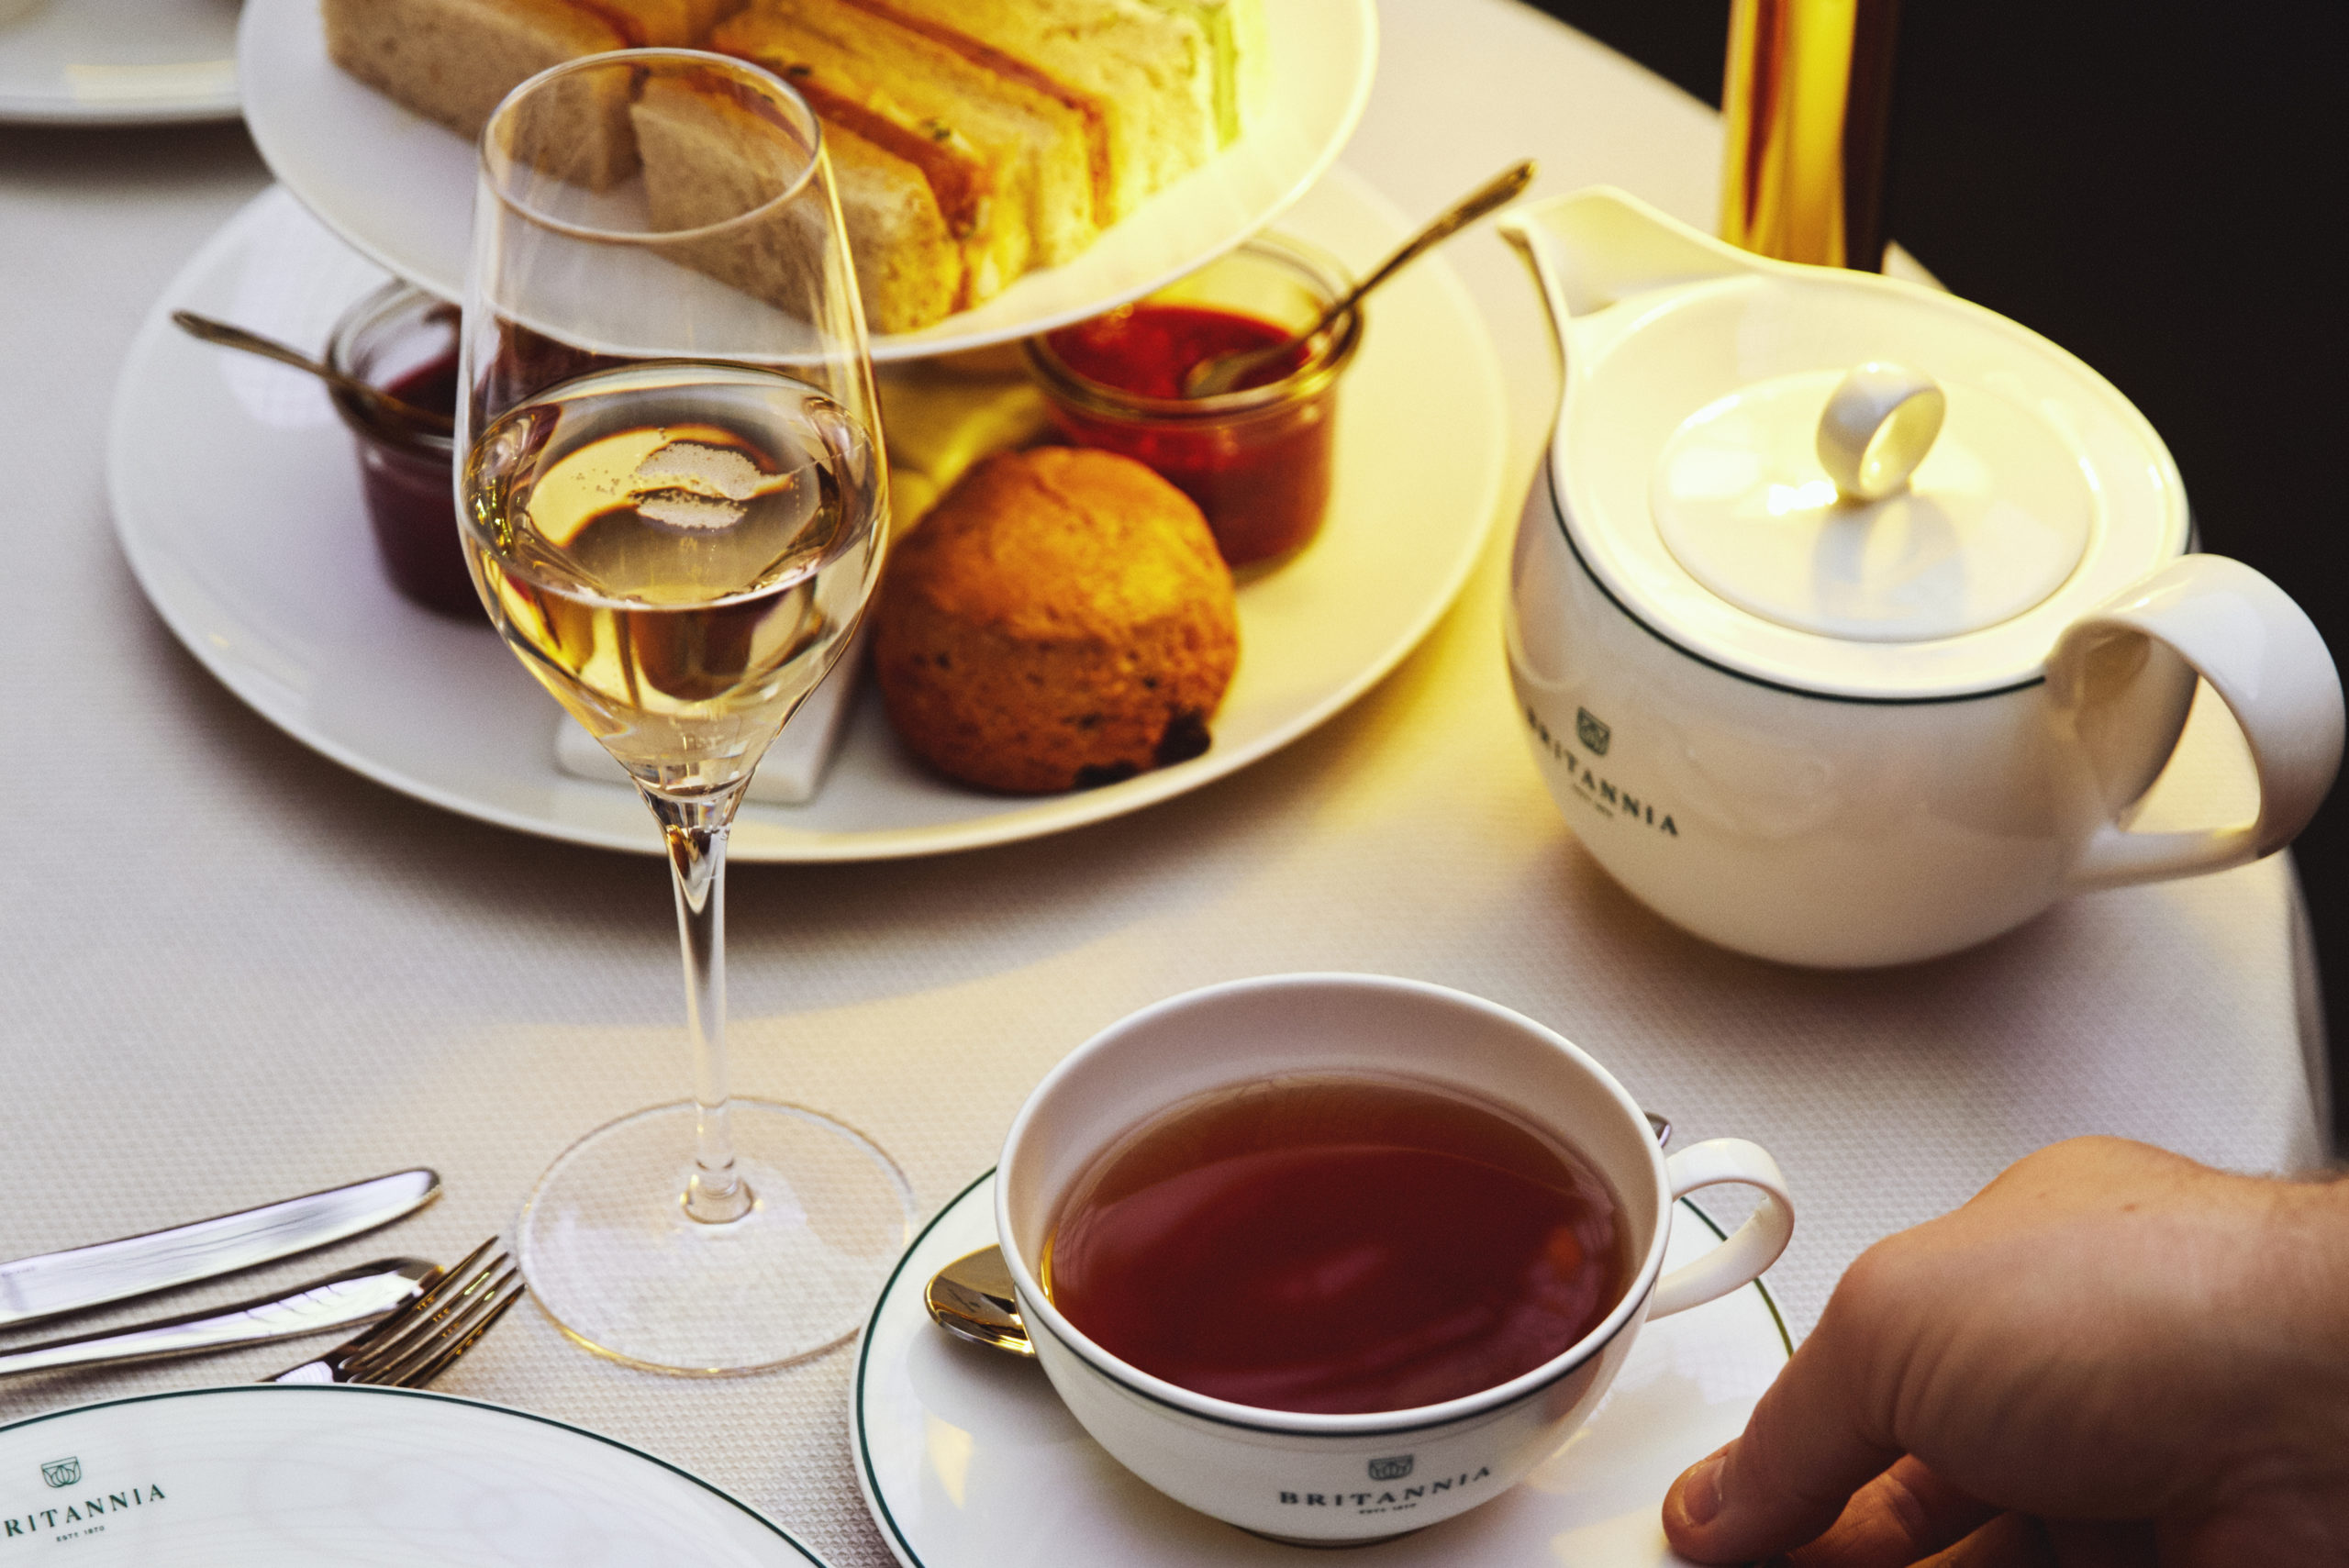 a serving of Britannia Hotel afternoon tea in palmehaven, with champagne and scones